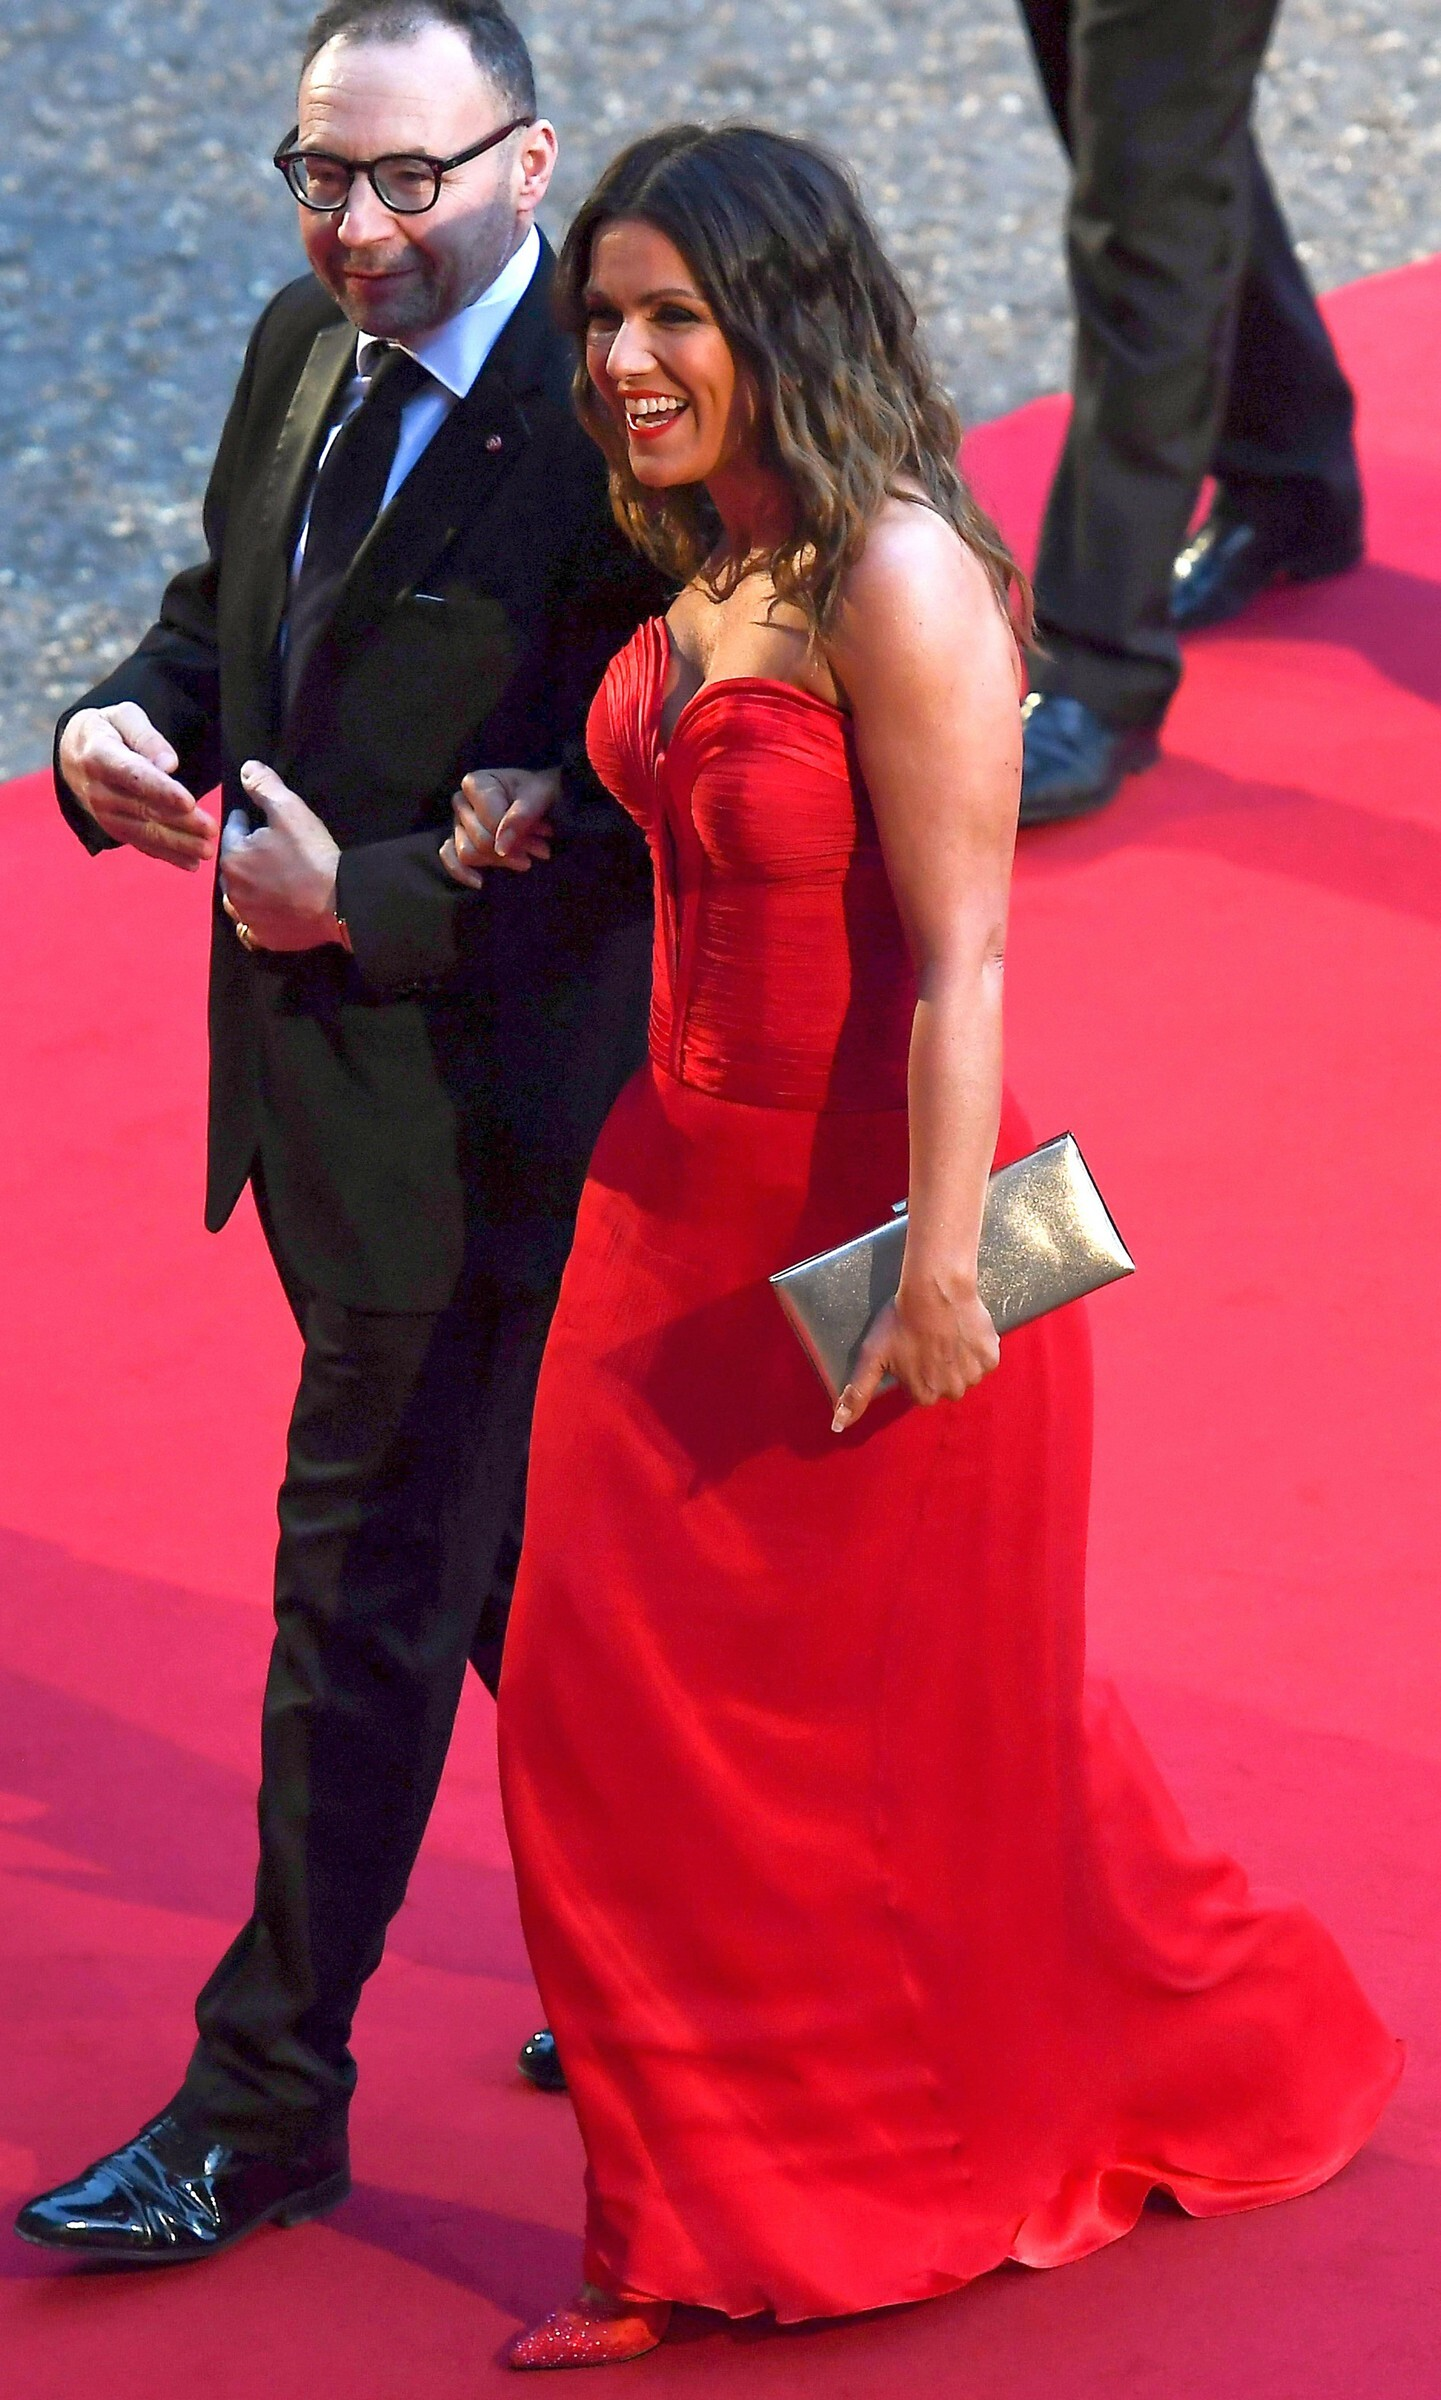 Susanna Reid's deep cleavage at GQ Men of the Year Awards & afterparty at Tate Modern in London wearing a red dress, 09/03/2019.